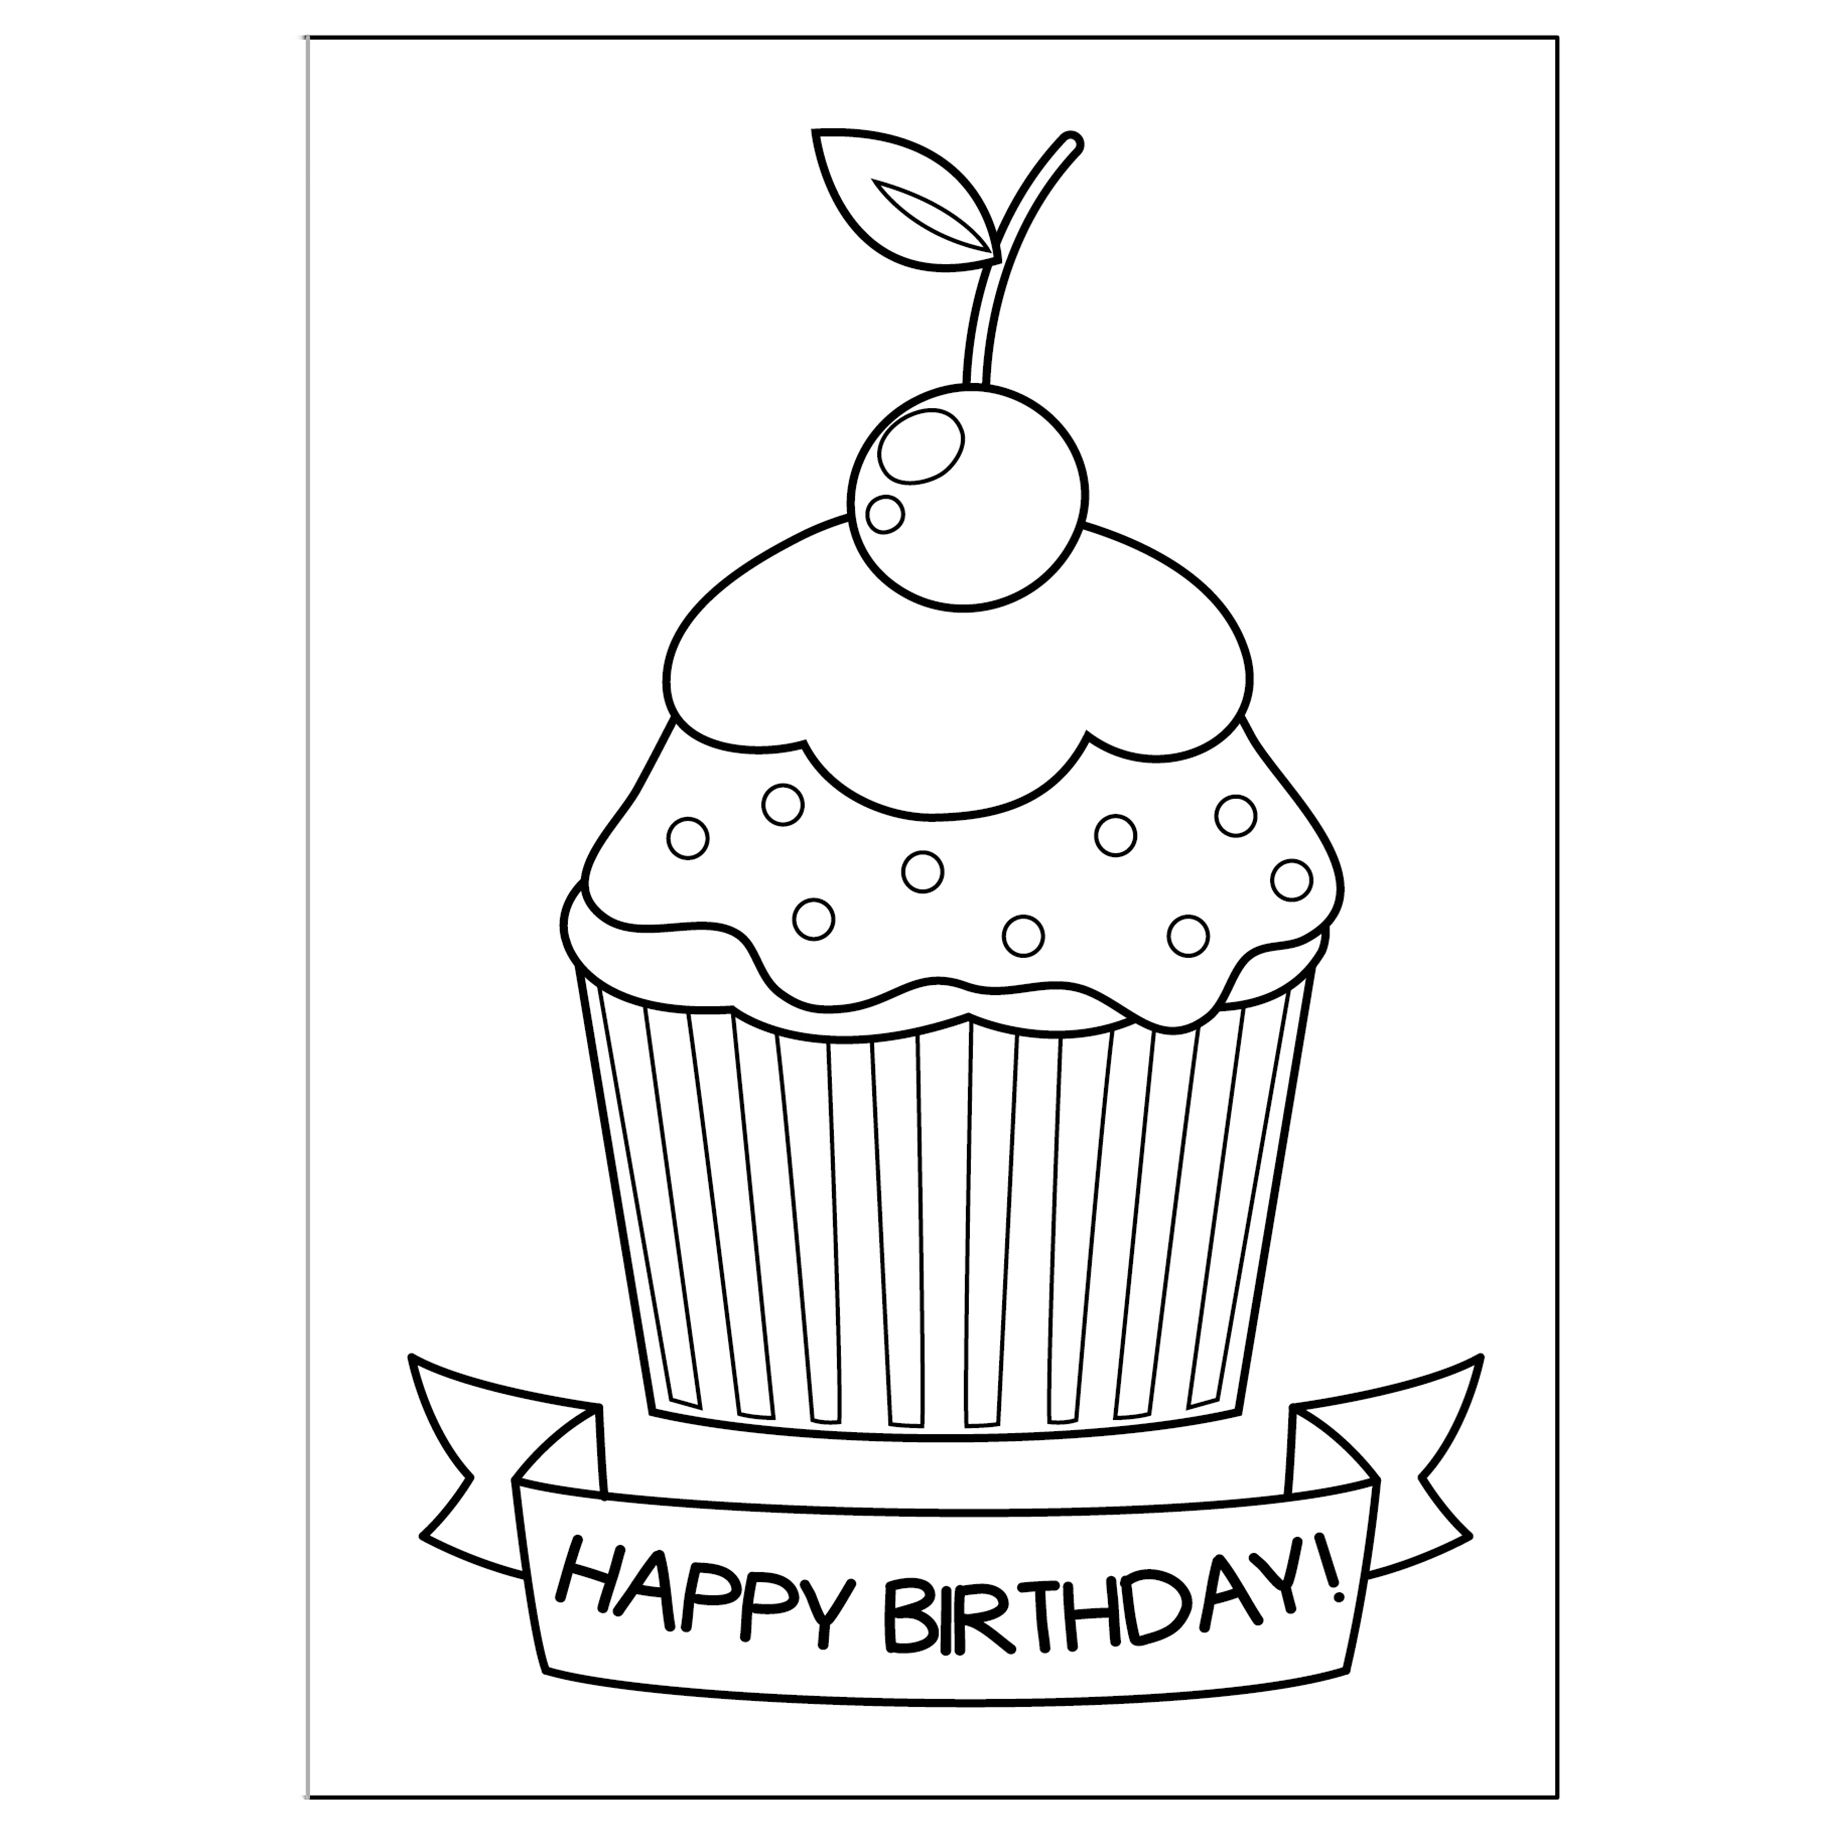 Cute Greeting Cards To Print And Color Coloring Birthday Cards